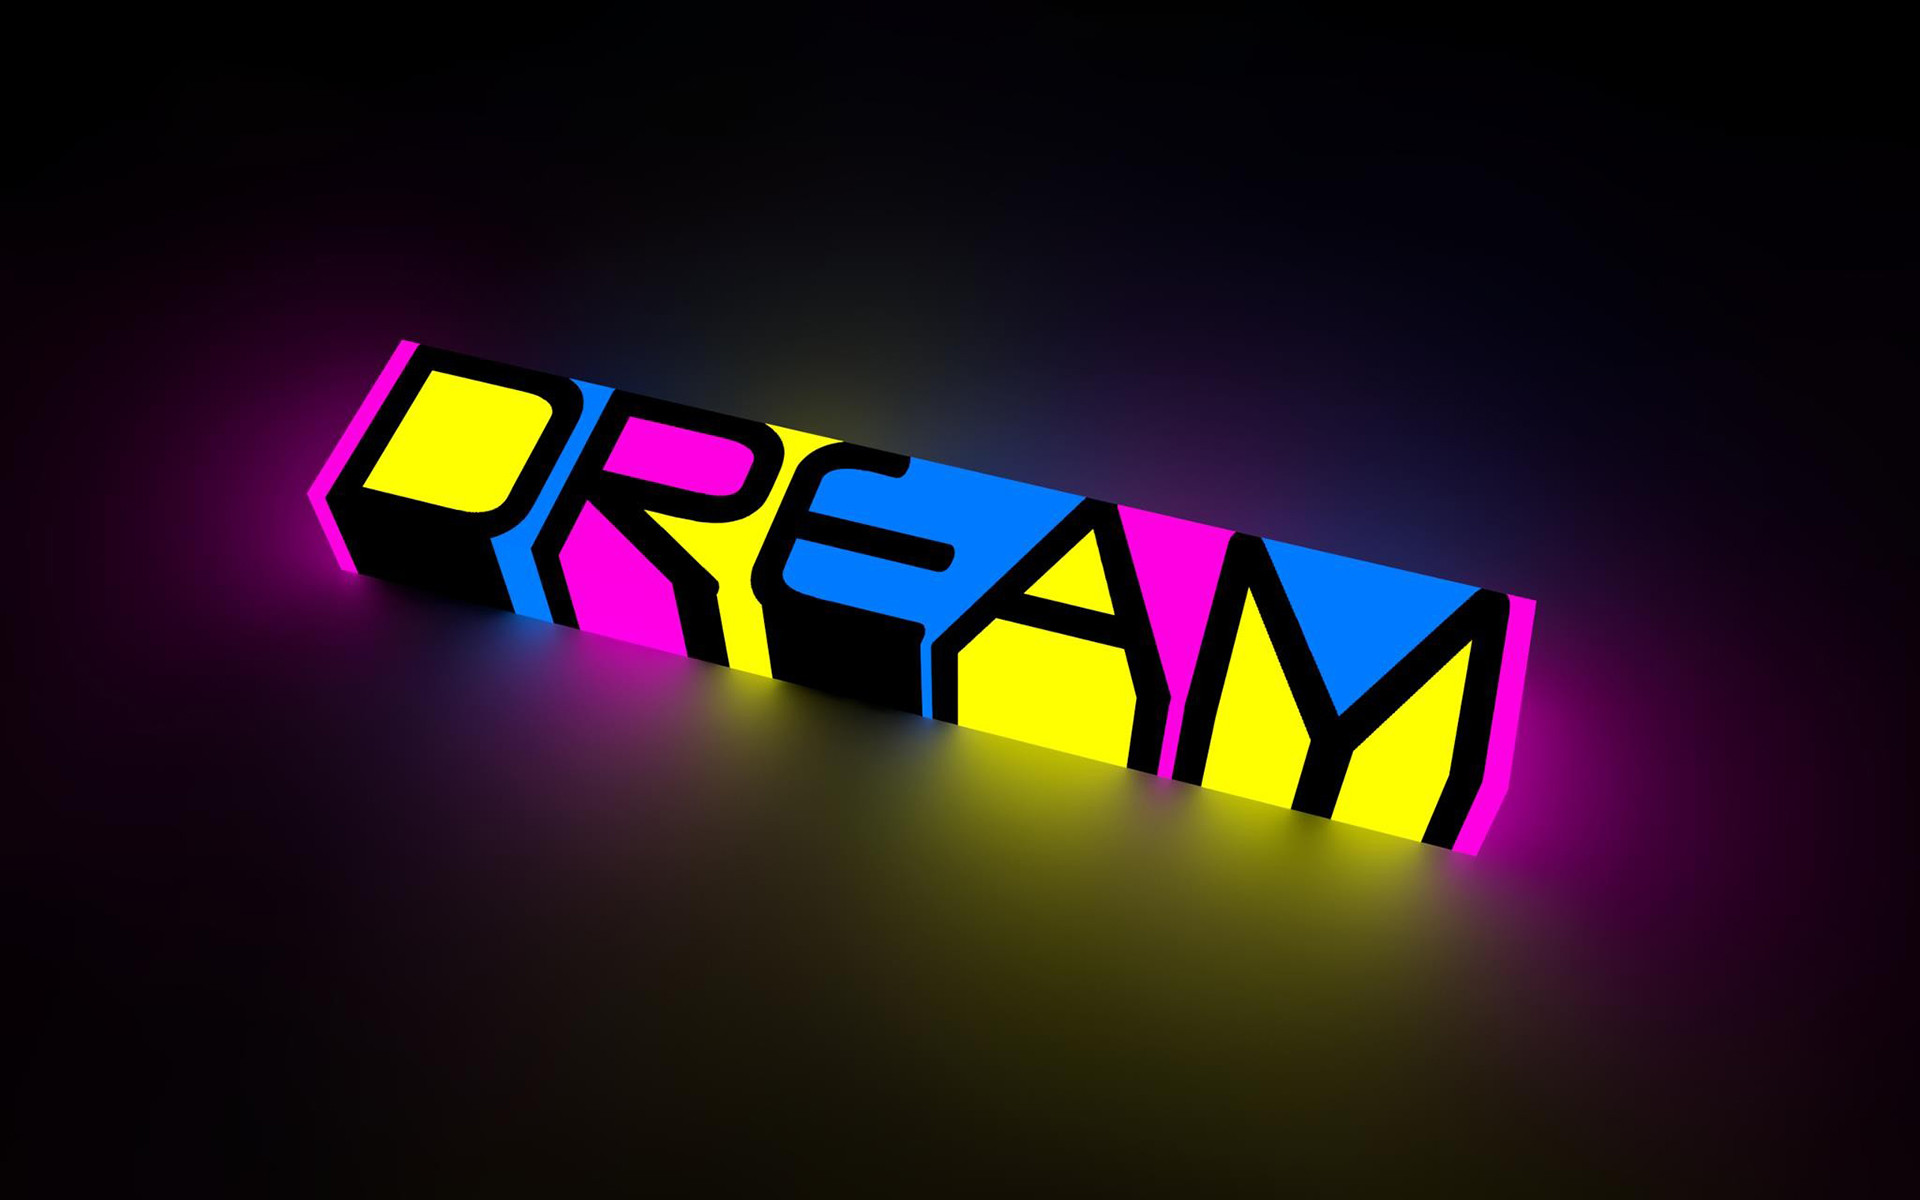 Neon Colors Wallpaper | … similar colors view more with similar colors  uploader thegates